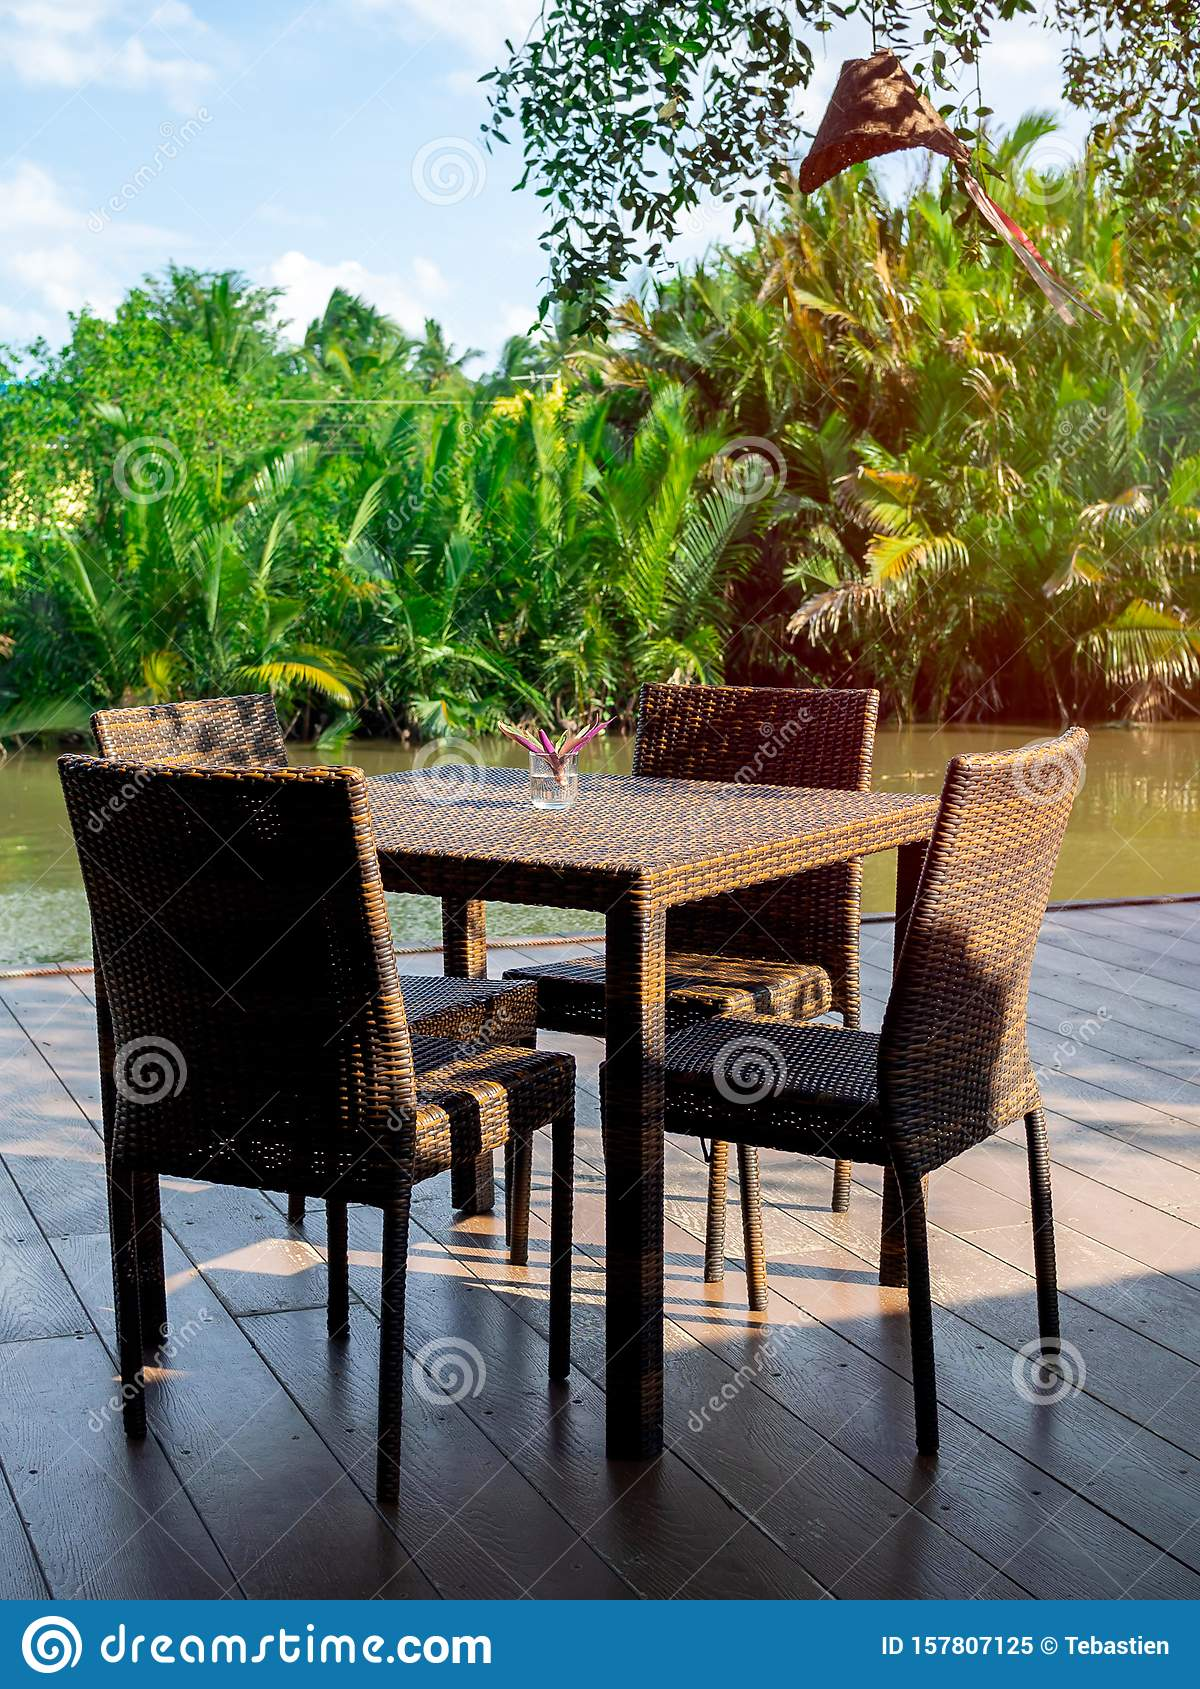 Rattan Dining Table Furniture Set On Wooden Terrace Near ...